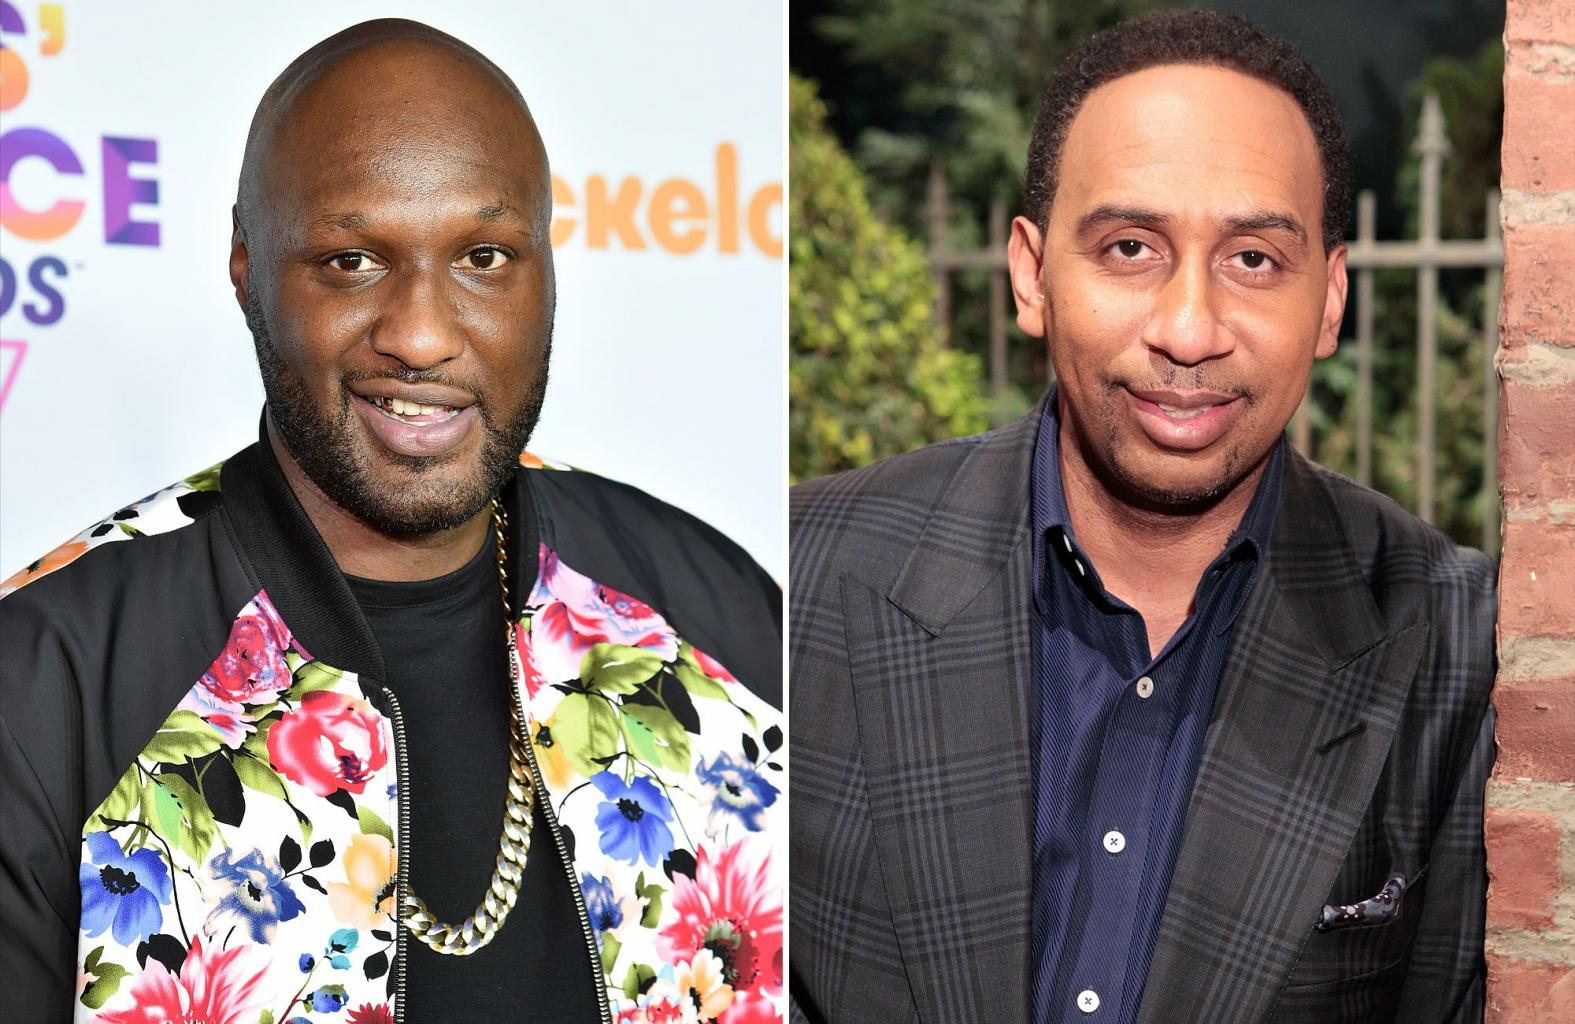 Lamar Odom Fires Back at Jokes About Him Doing Crack: 'Think of the Others Battling Addiction'